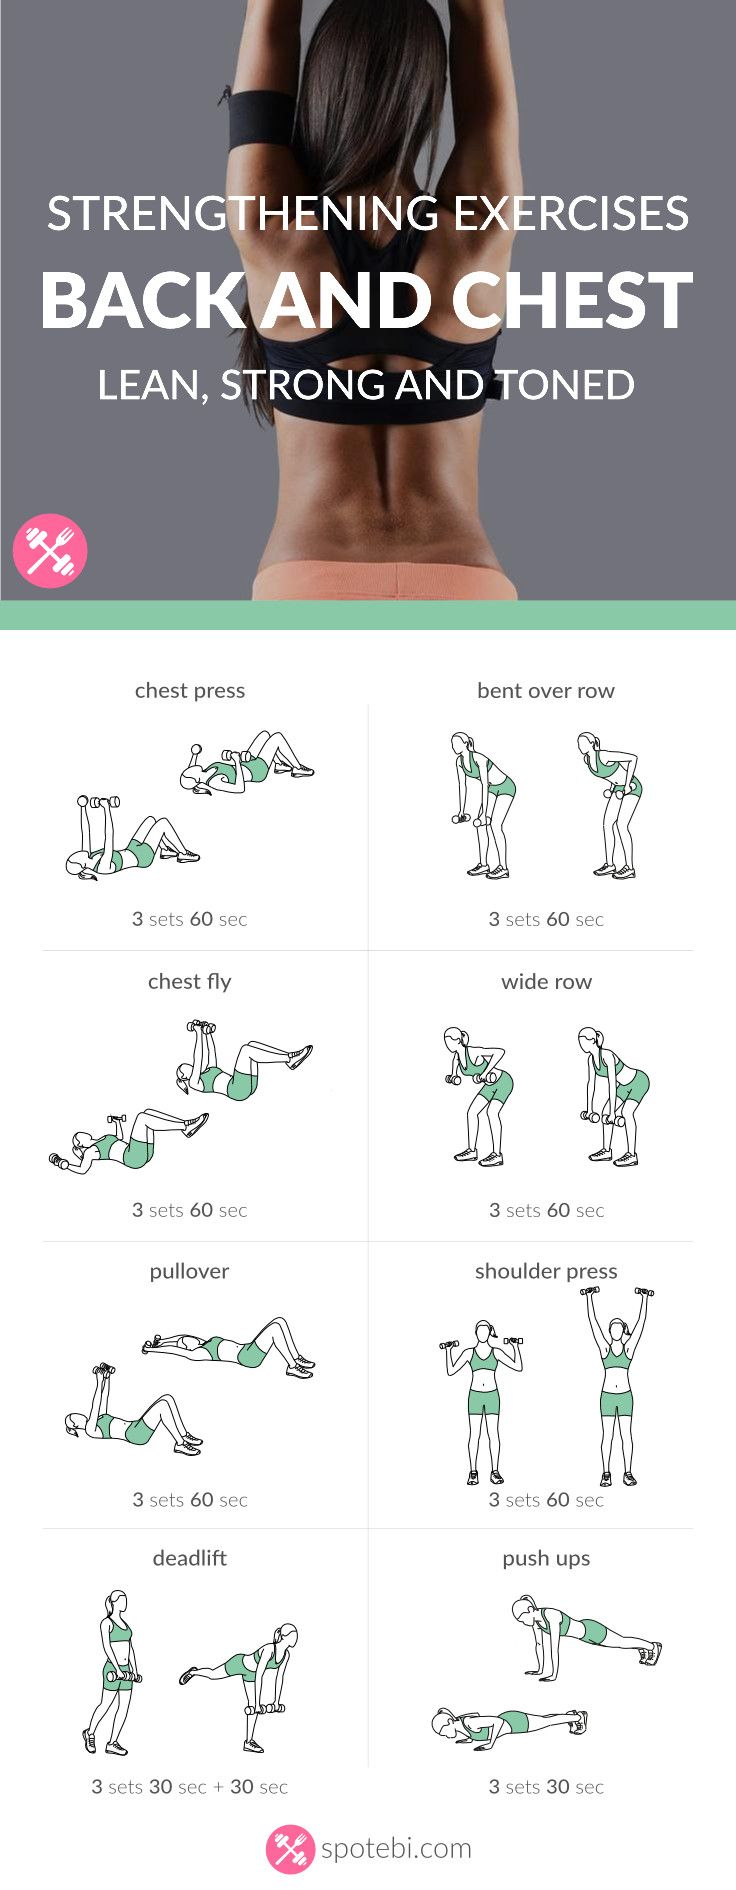 Try these chest and back strengthening exercises for women to help you tone, firm and lift your chest and improve your posture. http://www.spotebi.com/workout-routines/chest-back-strengthening-exercises-lean-strong-toned/